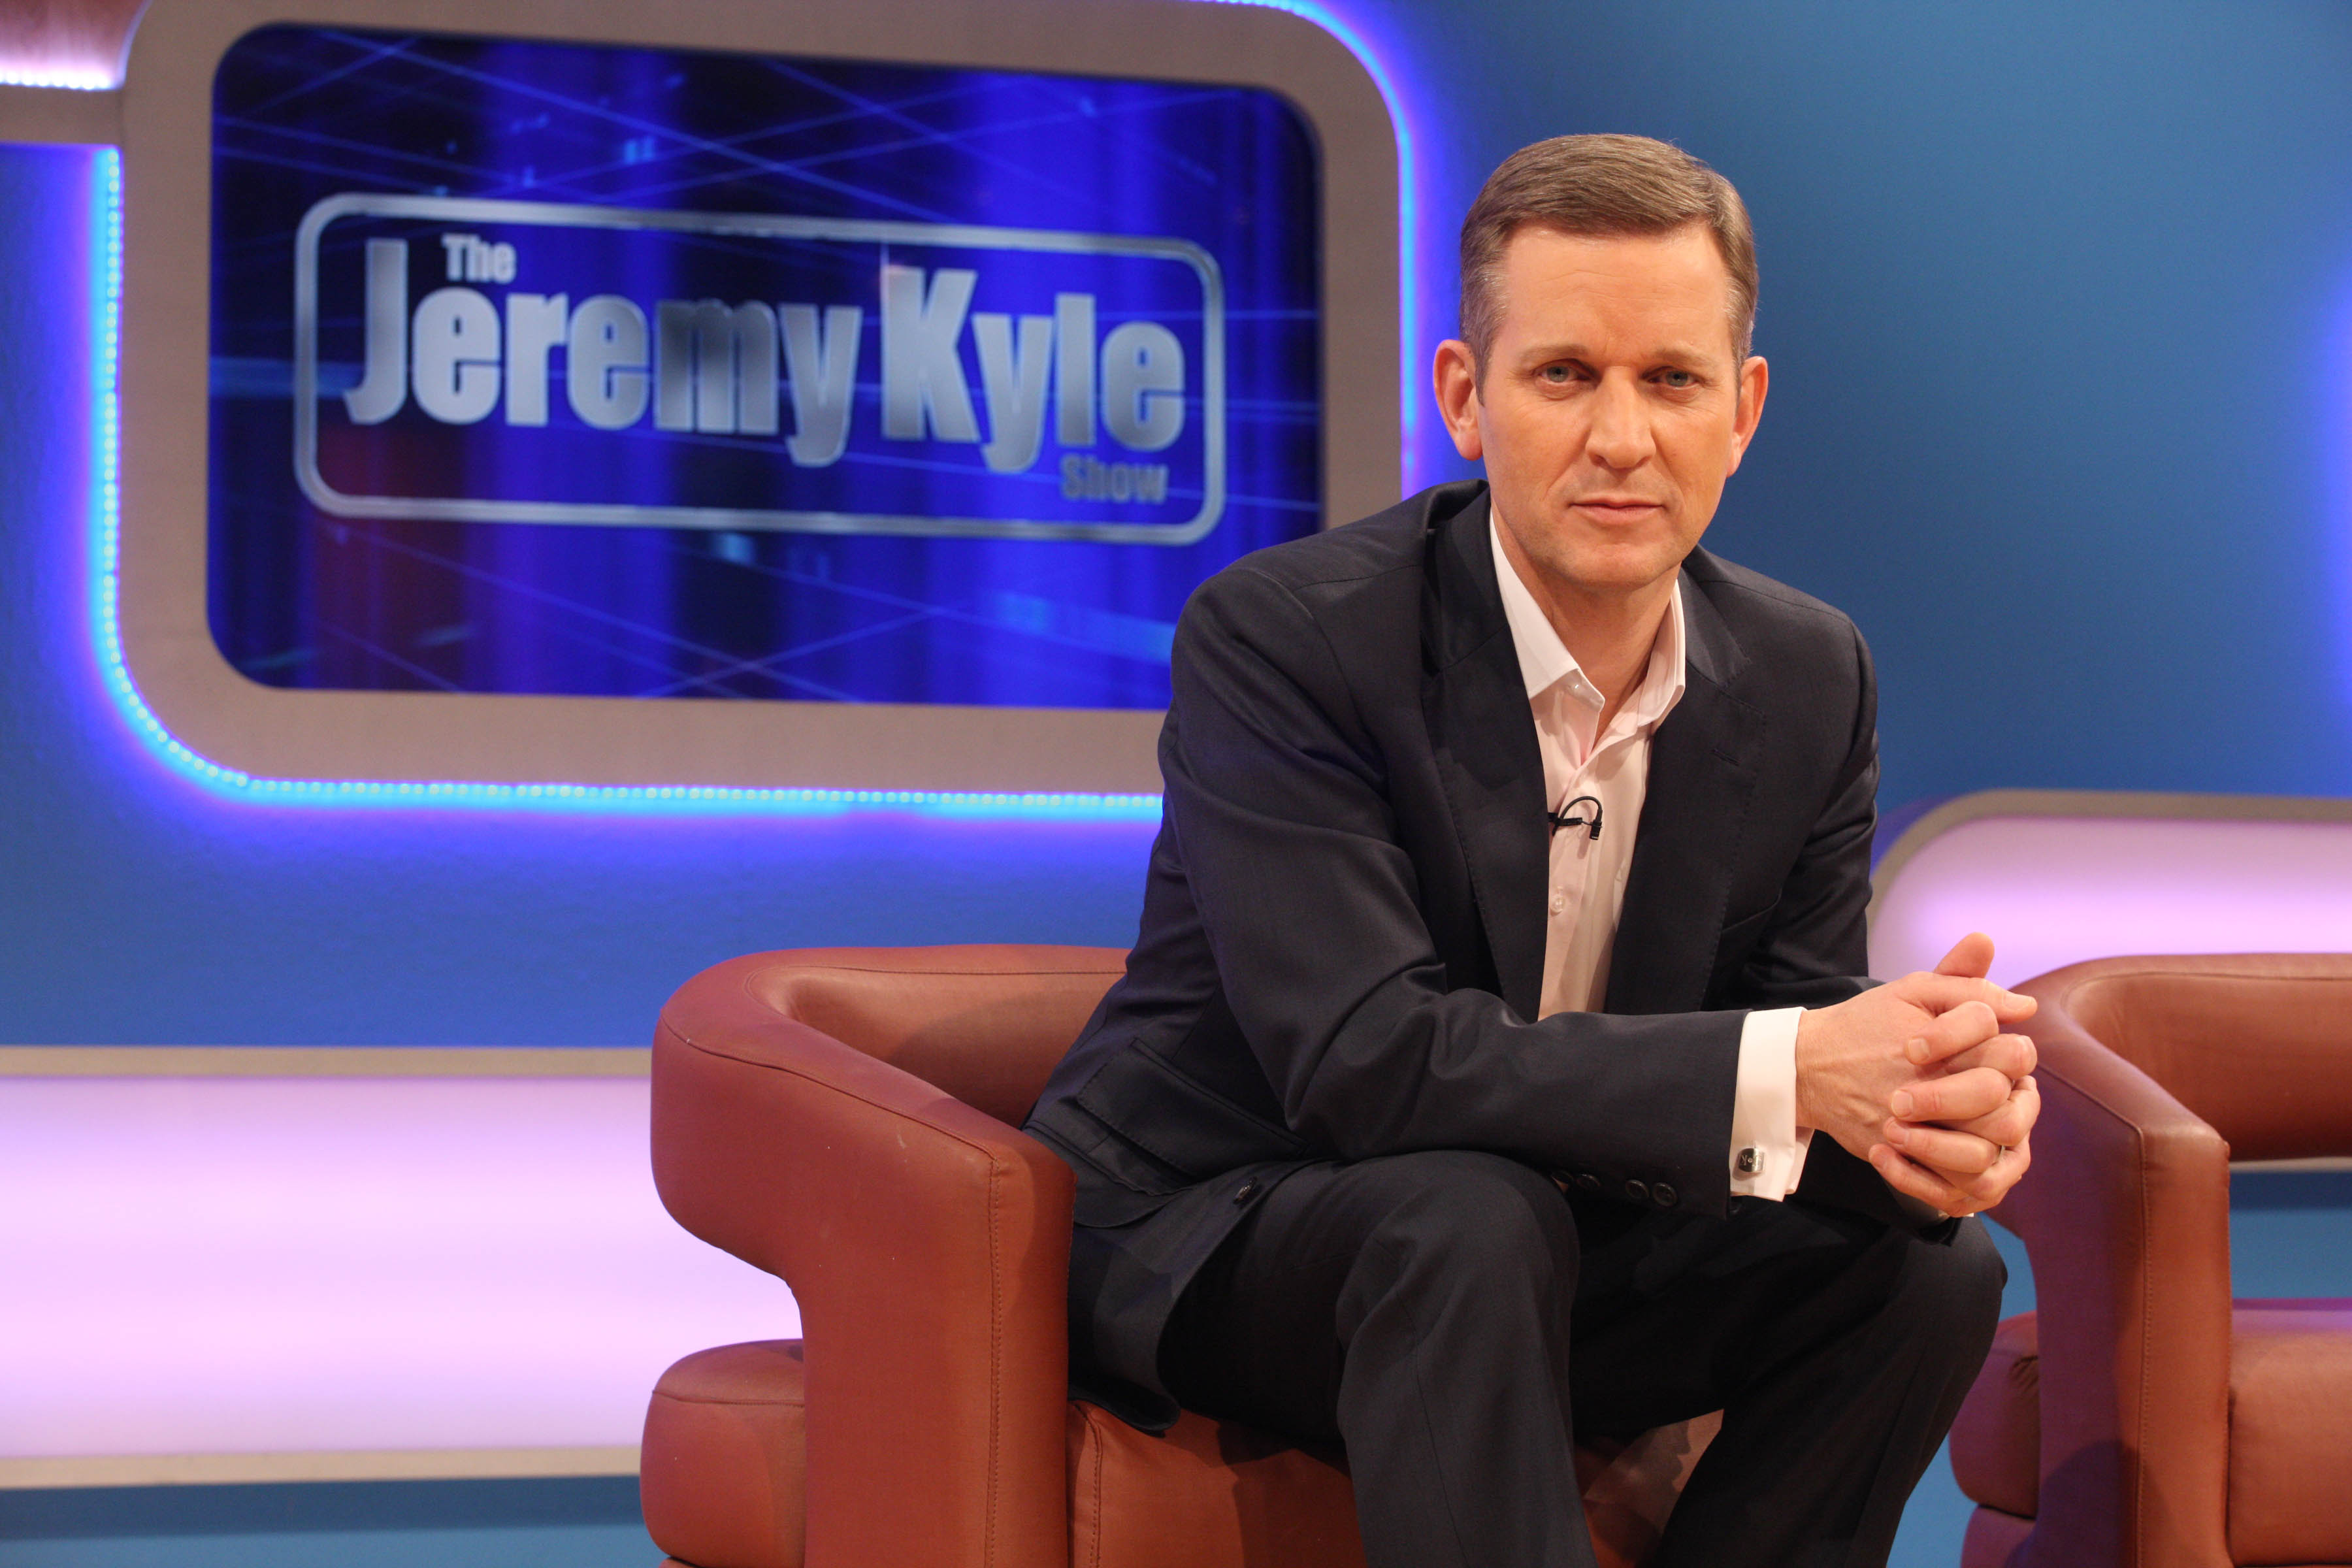 Jeremy Kyle to front new Embarrassing Bodies-style show where he confronts patients with STIs